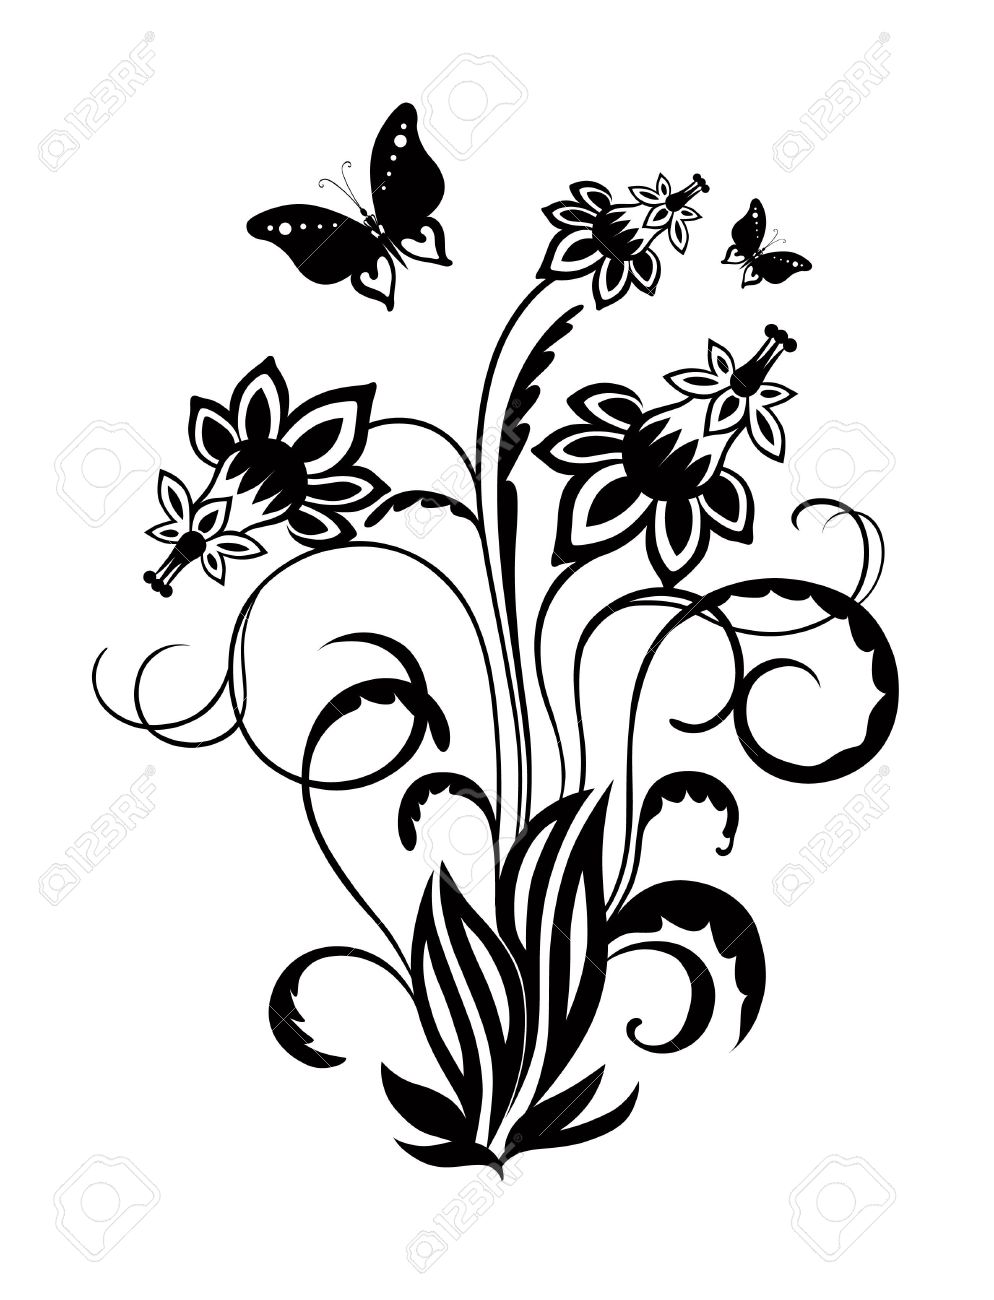 Abstract Silhouette Of Decorative Butterflies And Flowers It